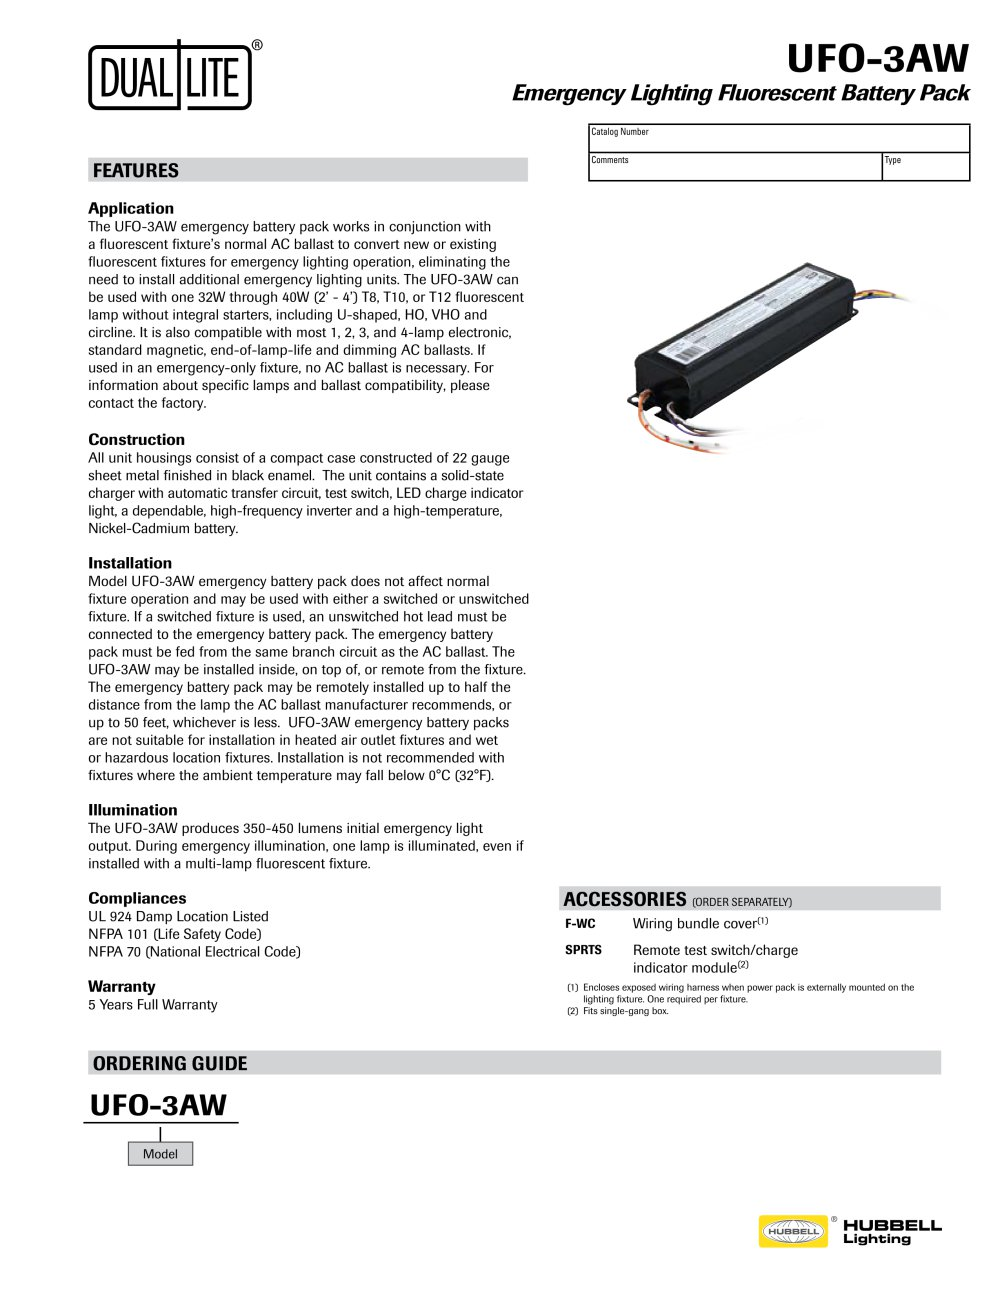 Lampak Ufo 3aw Specification Sheet Hubbell Industrial Lighting 40w Fluorescent Lamp Inverter Diagram 1 2 Pages